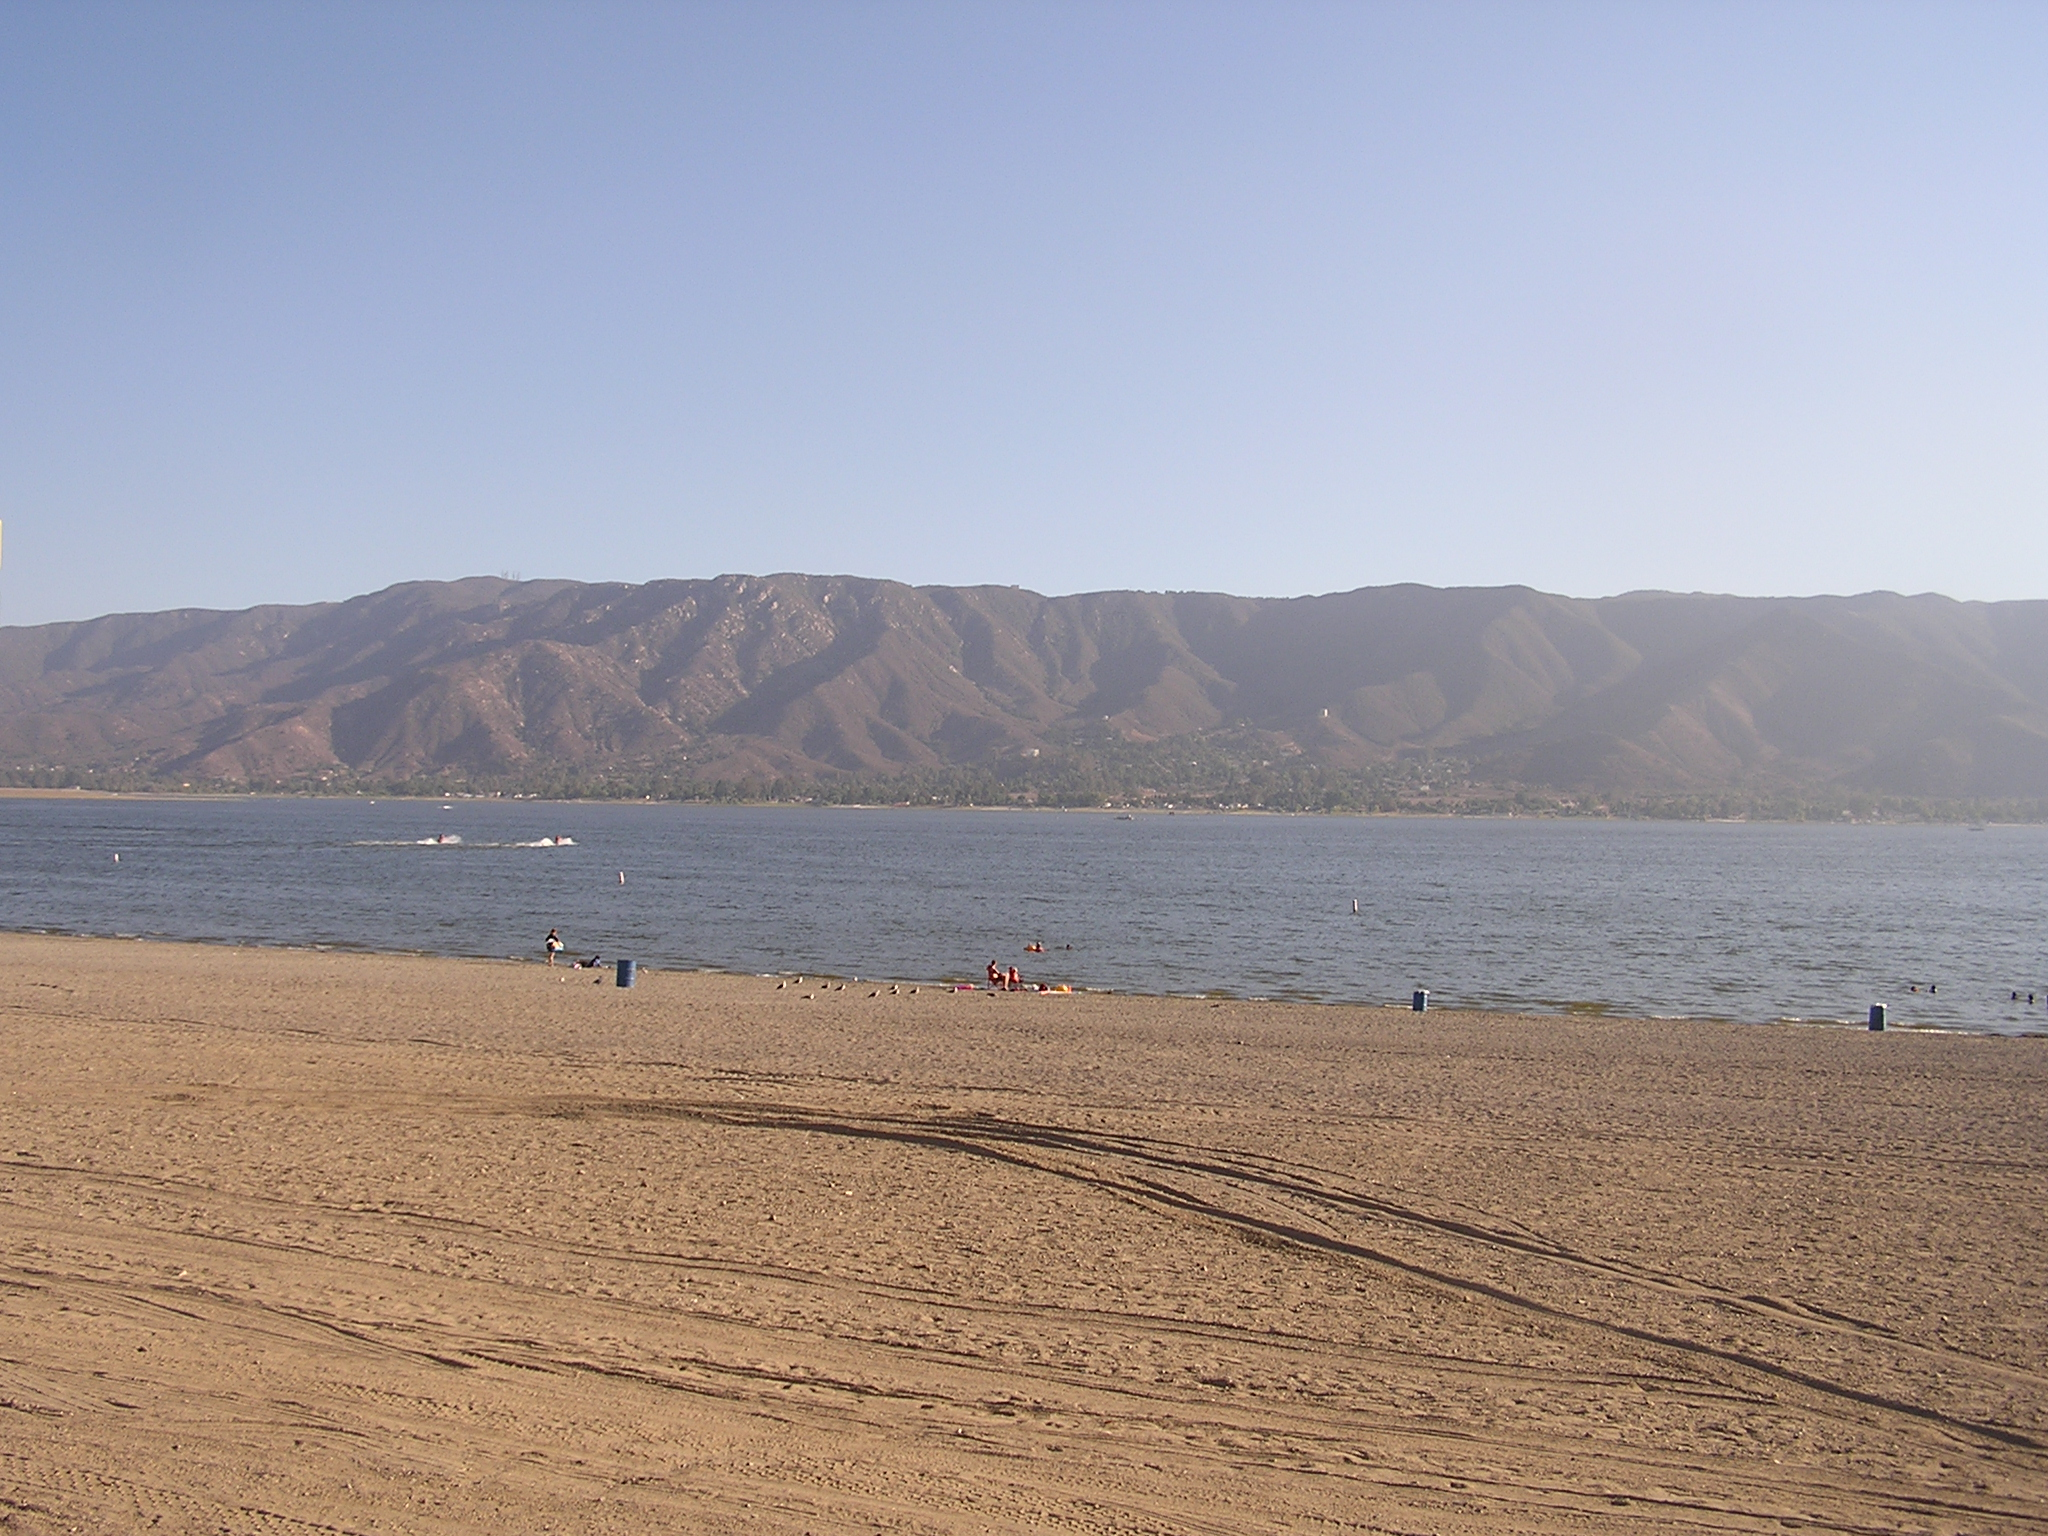 There is a Lake - Lake Elsinore